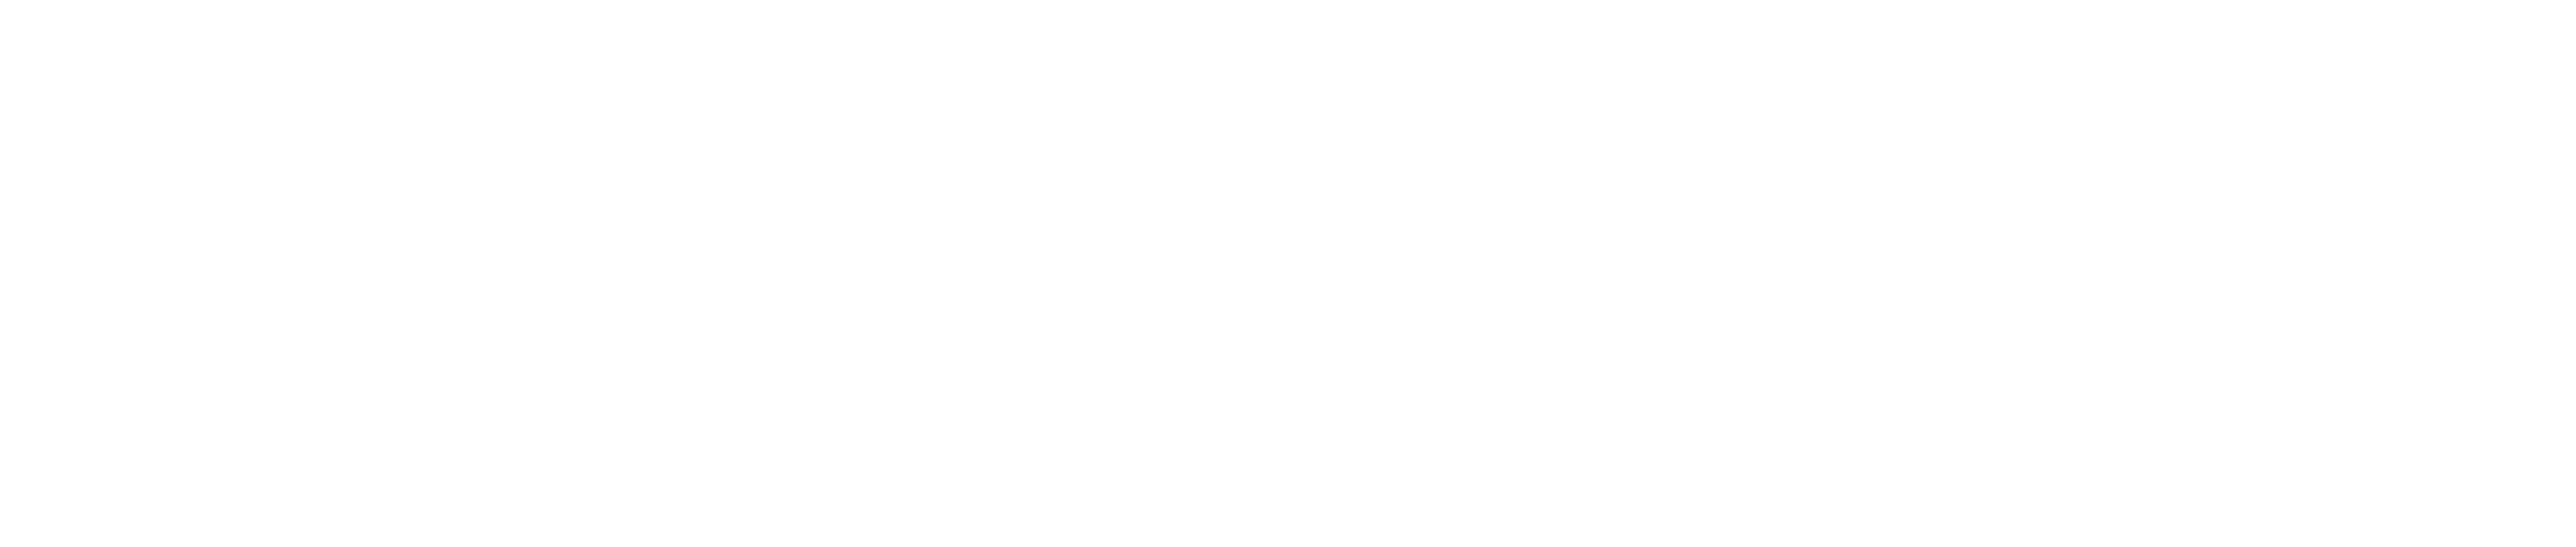 roderick pugh marketing logo white